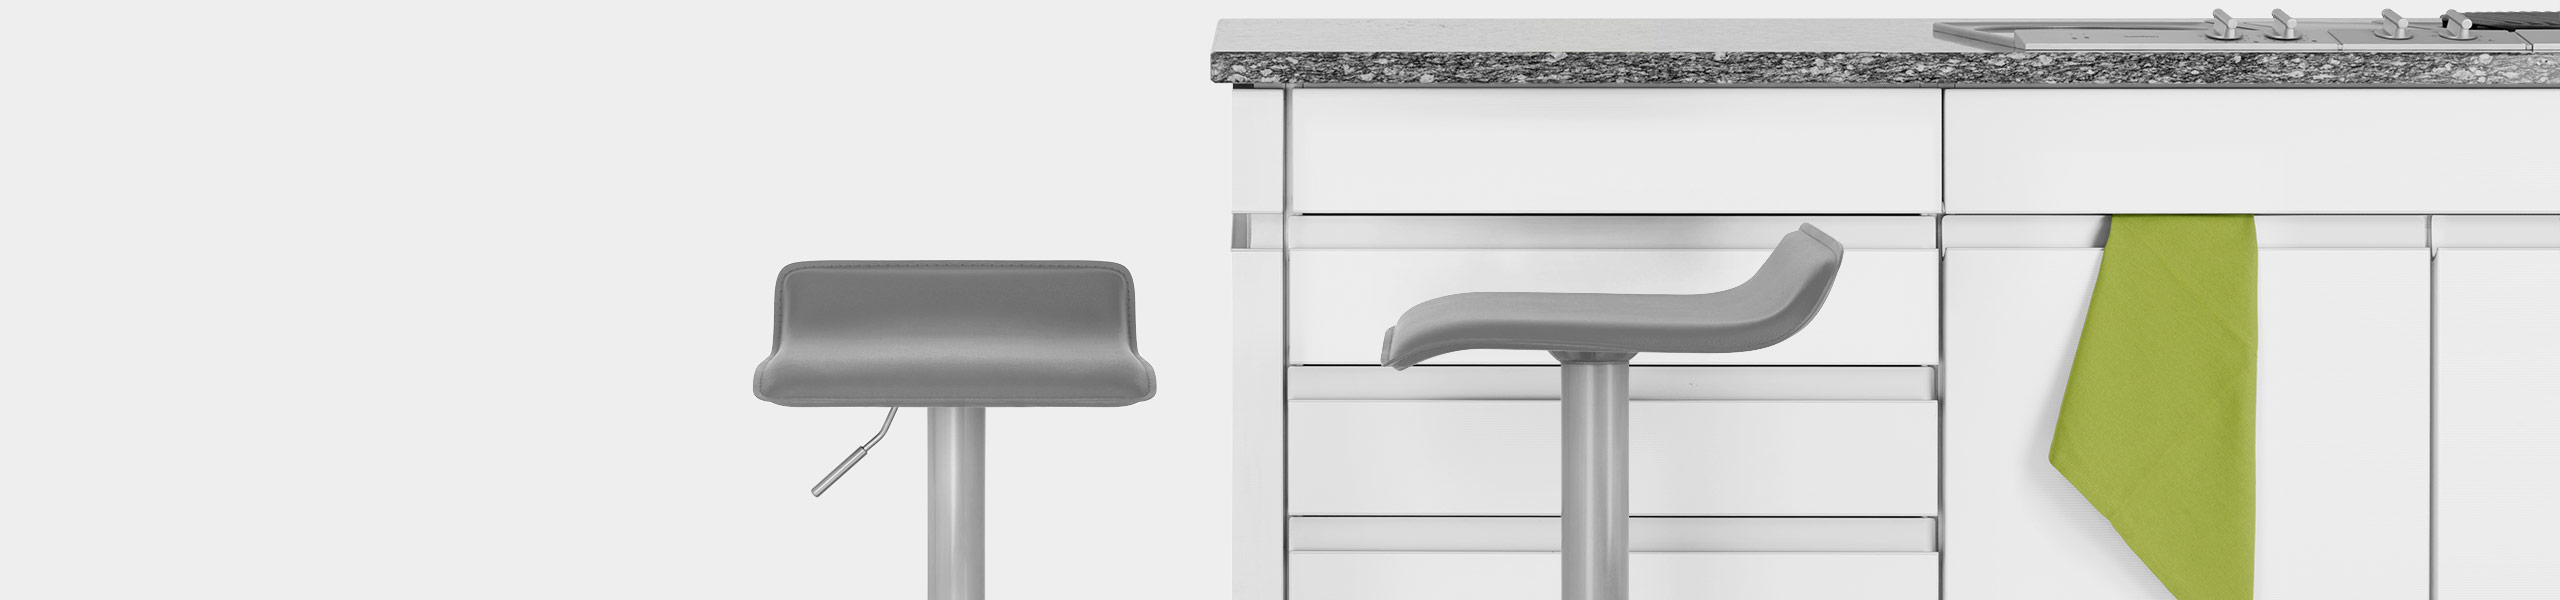 Mars Brushed Steel Bar Stool Grey Video Banner